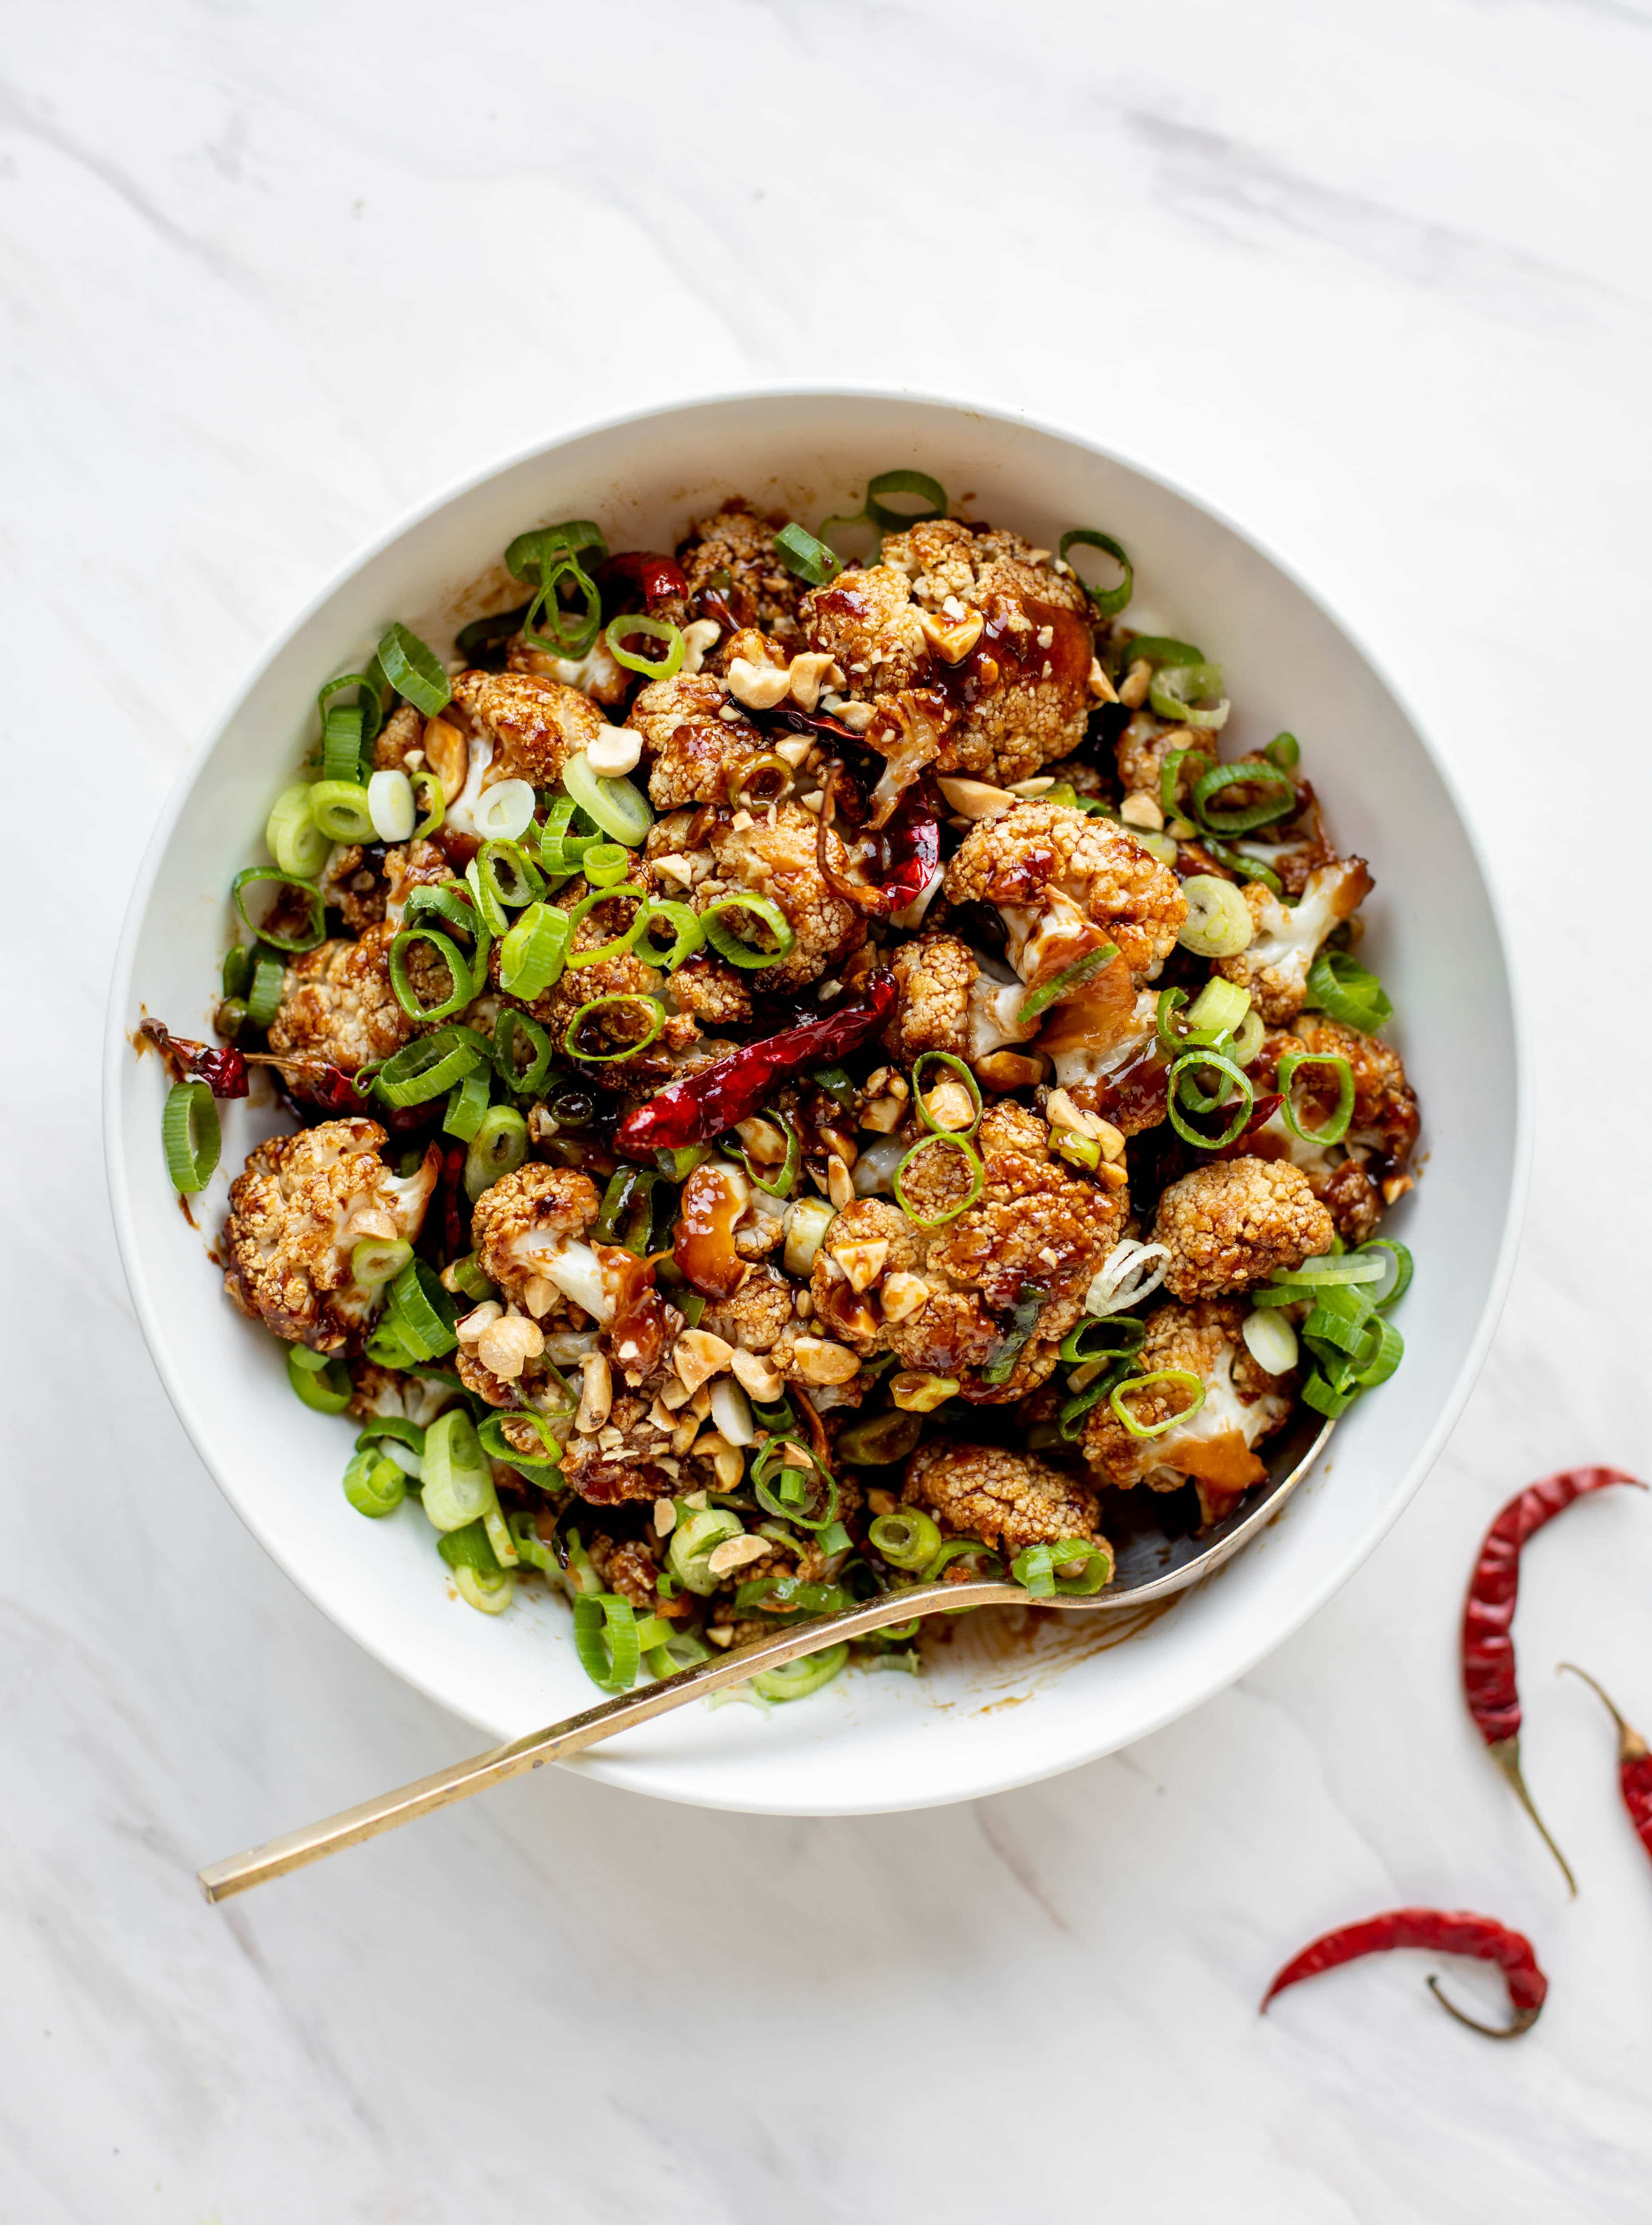 This kung pao cauliflower recipe is roasted on one sheet pan and covered in a delicious sauce! Serve alongside jasmine rice for the best dinner ever.